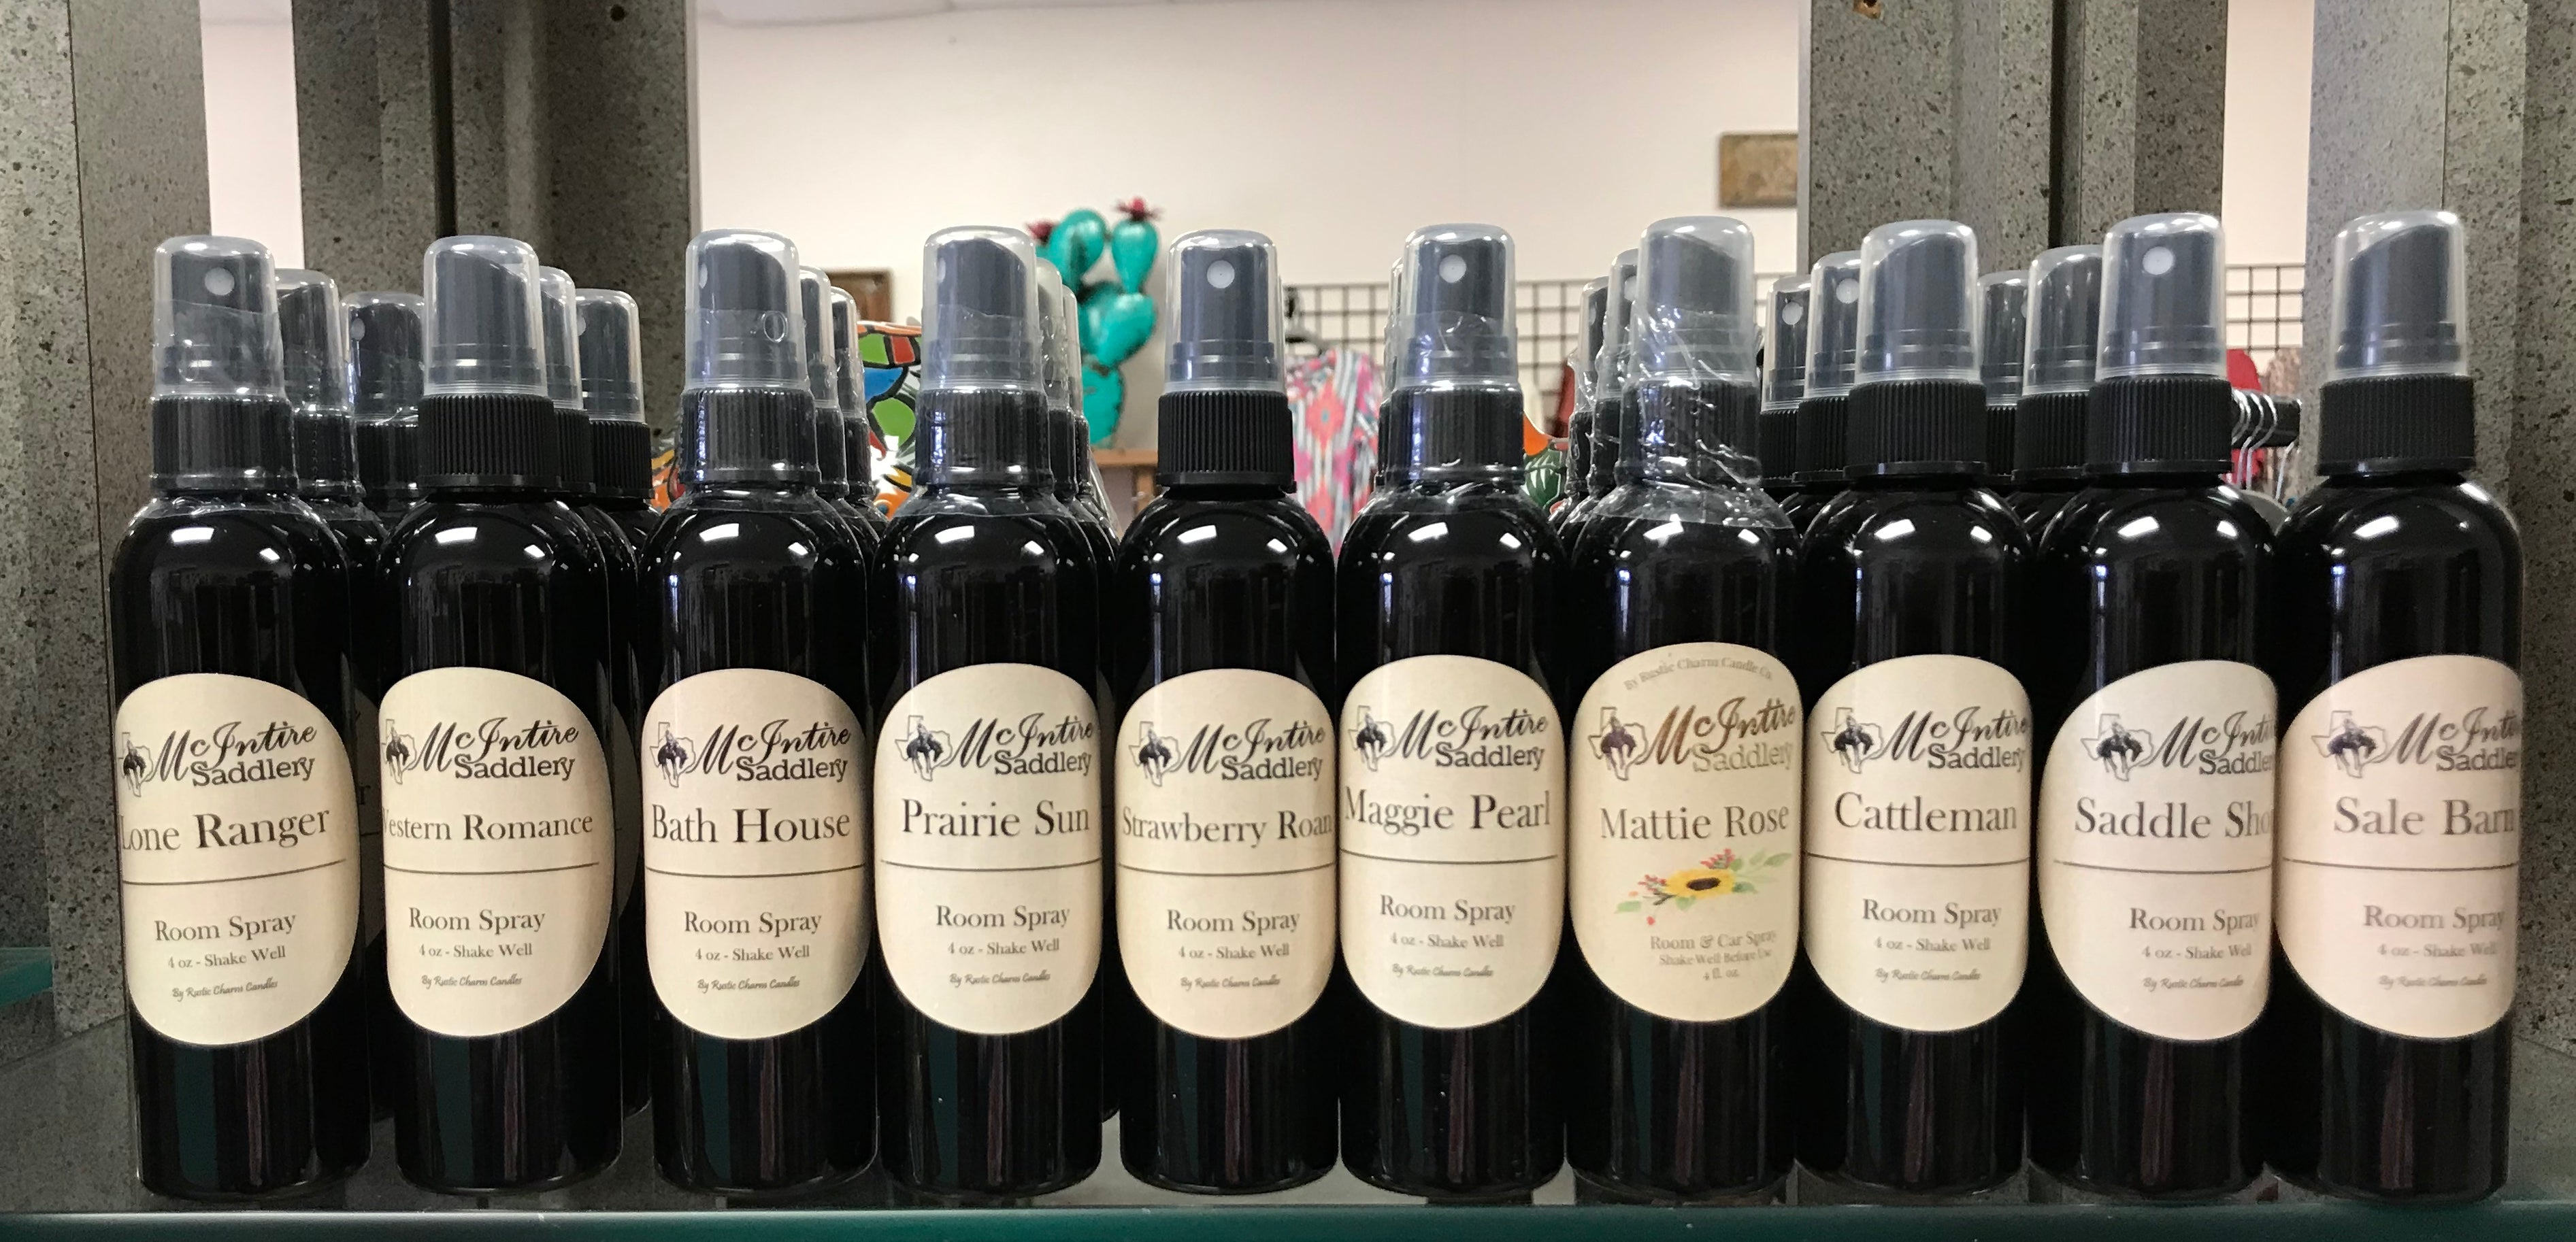 McIntire Saddlery Room Spray 4 oz.